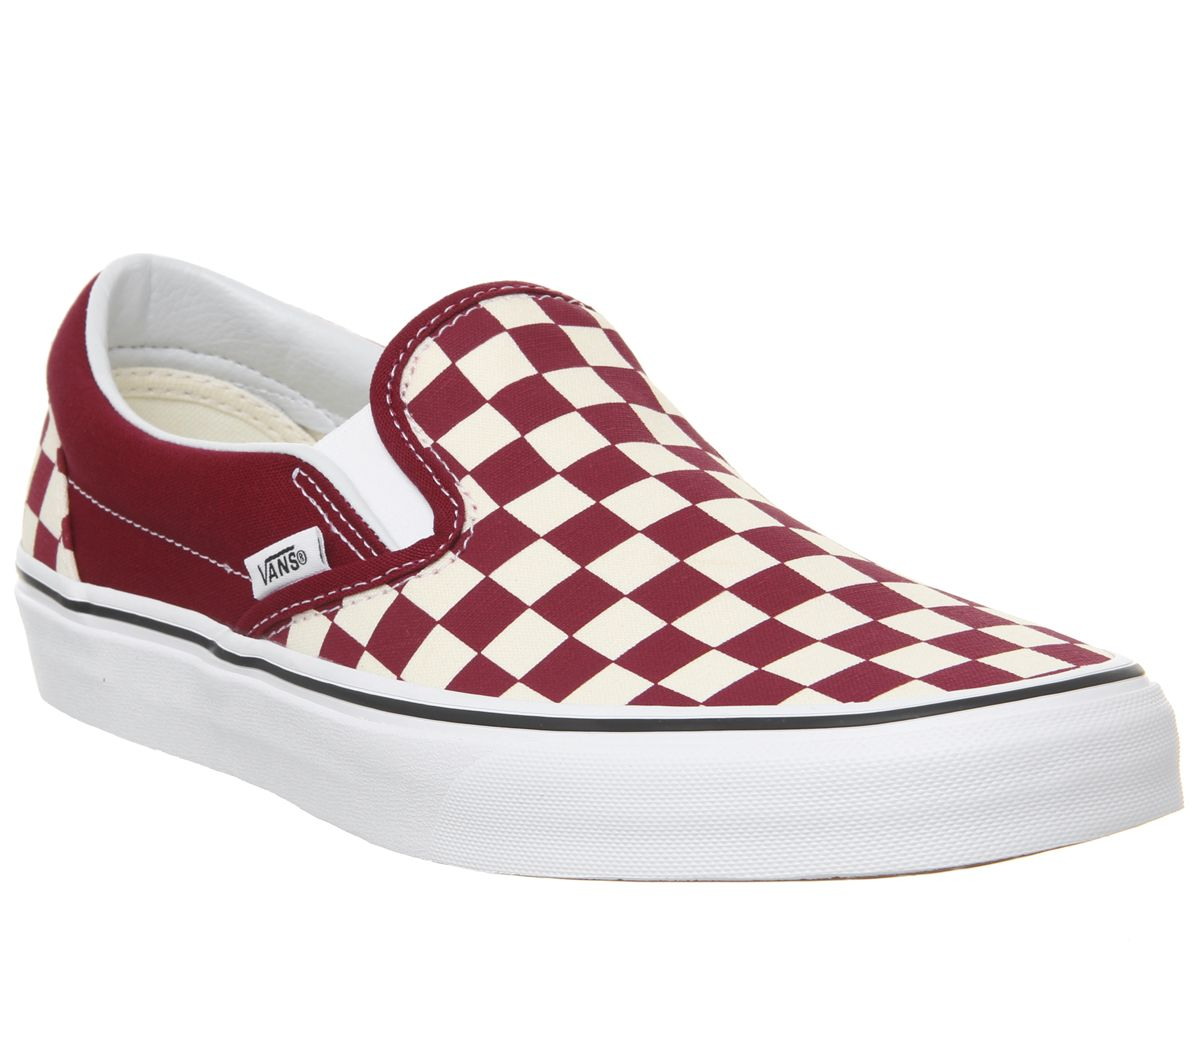 259f821d8cbd Vans Vans Classic Slip Ons Rumba Red True White - His trainers